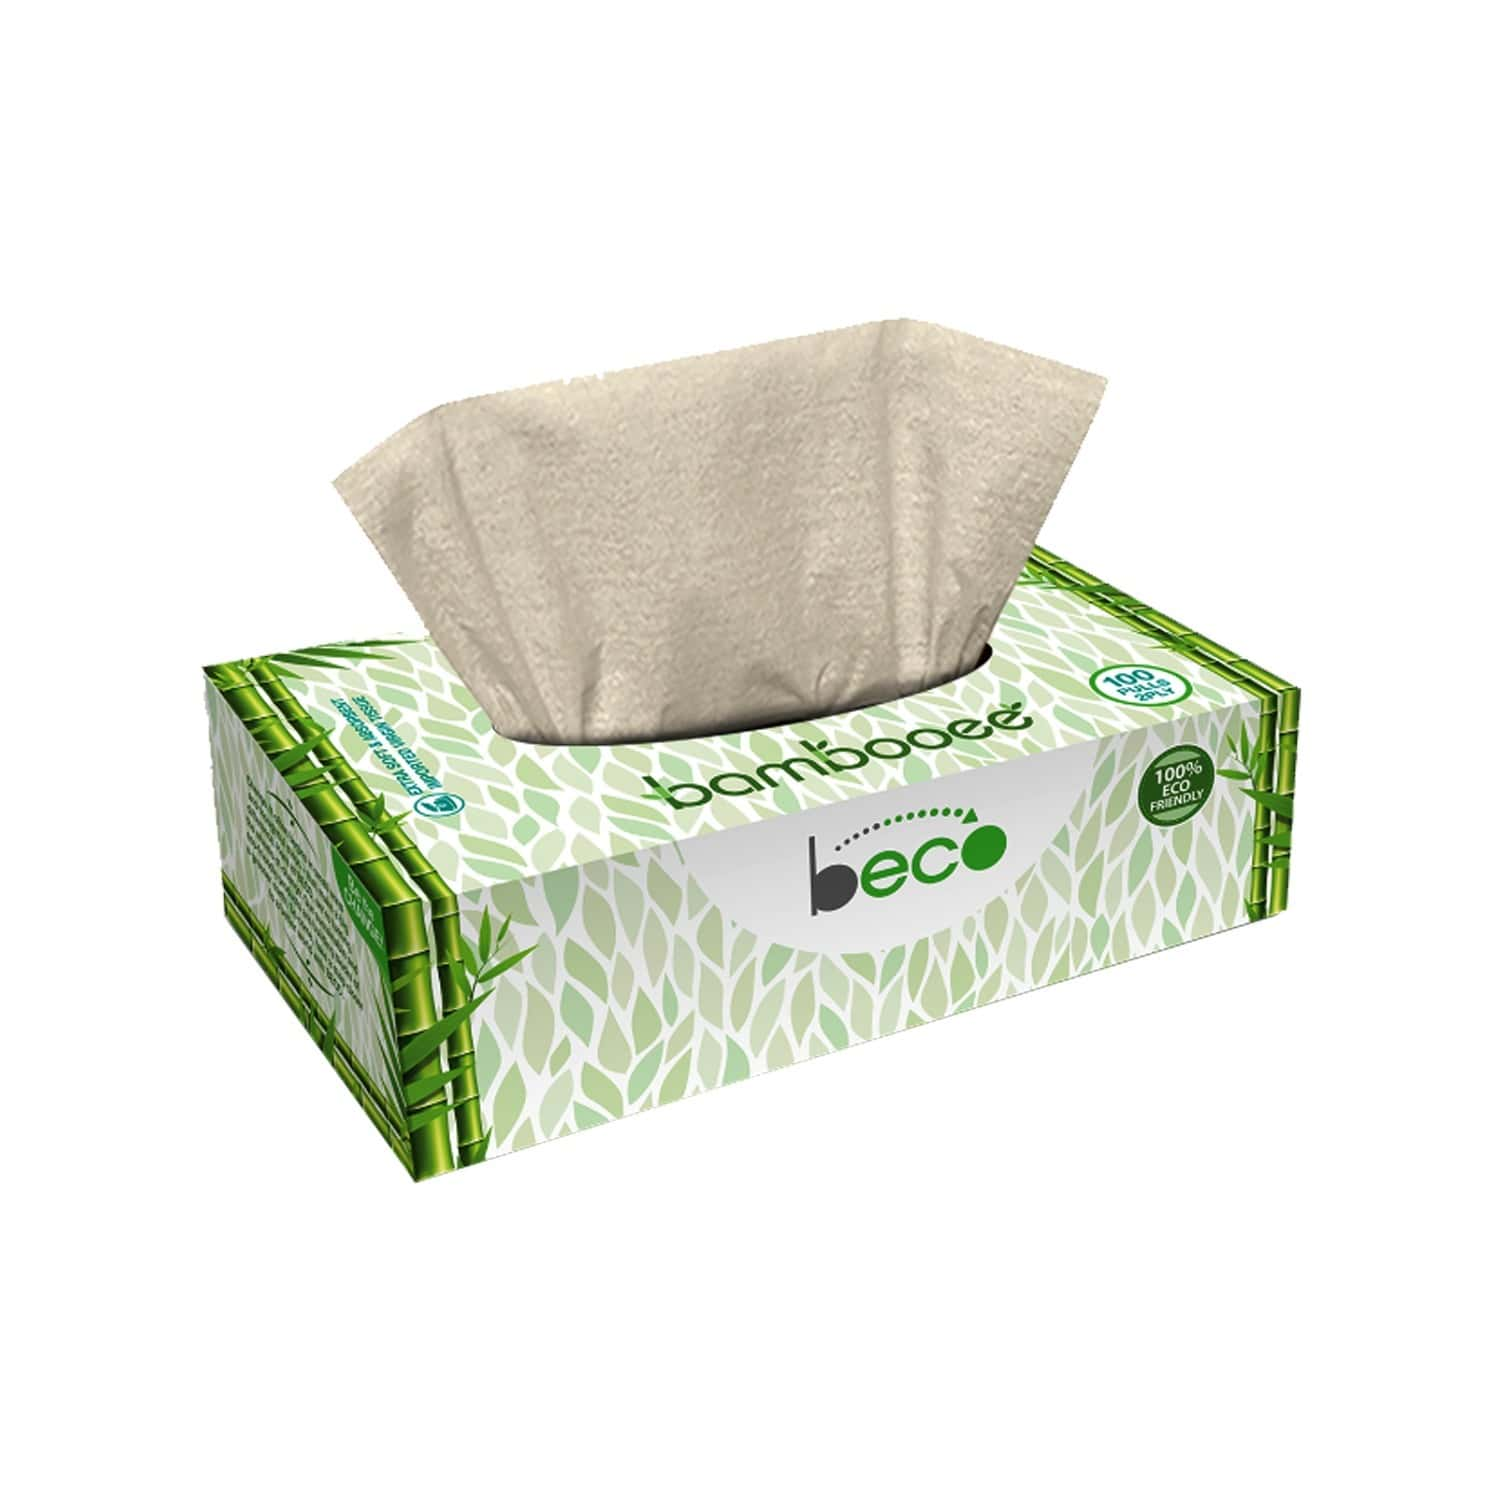 Beco Facial Tissue Carbox - 100 Pulls